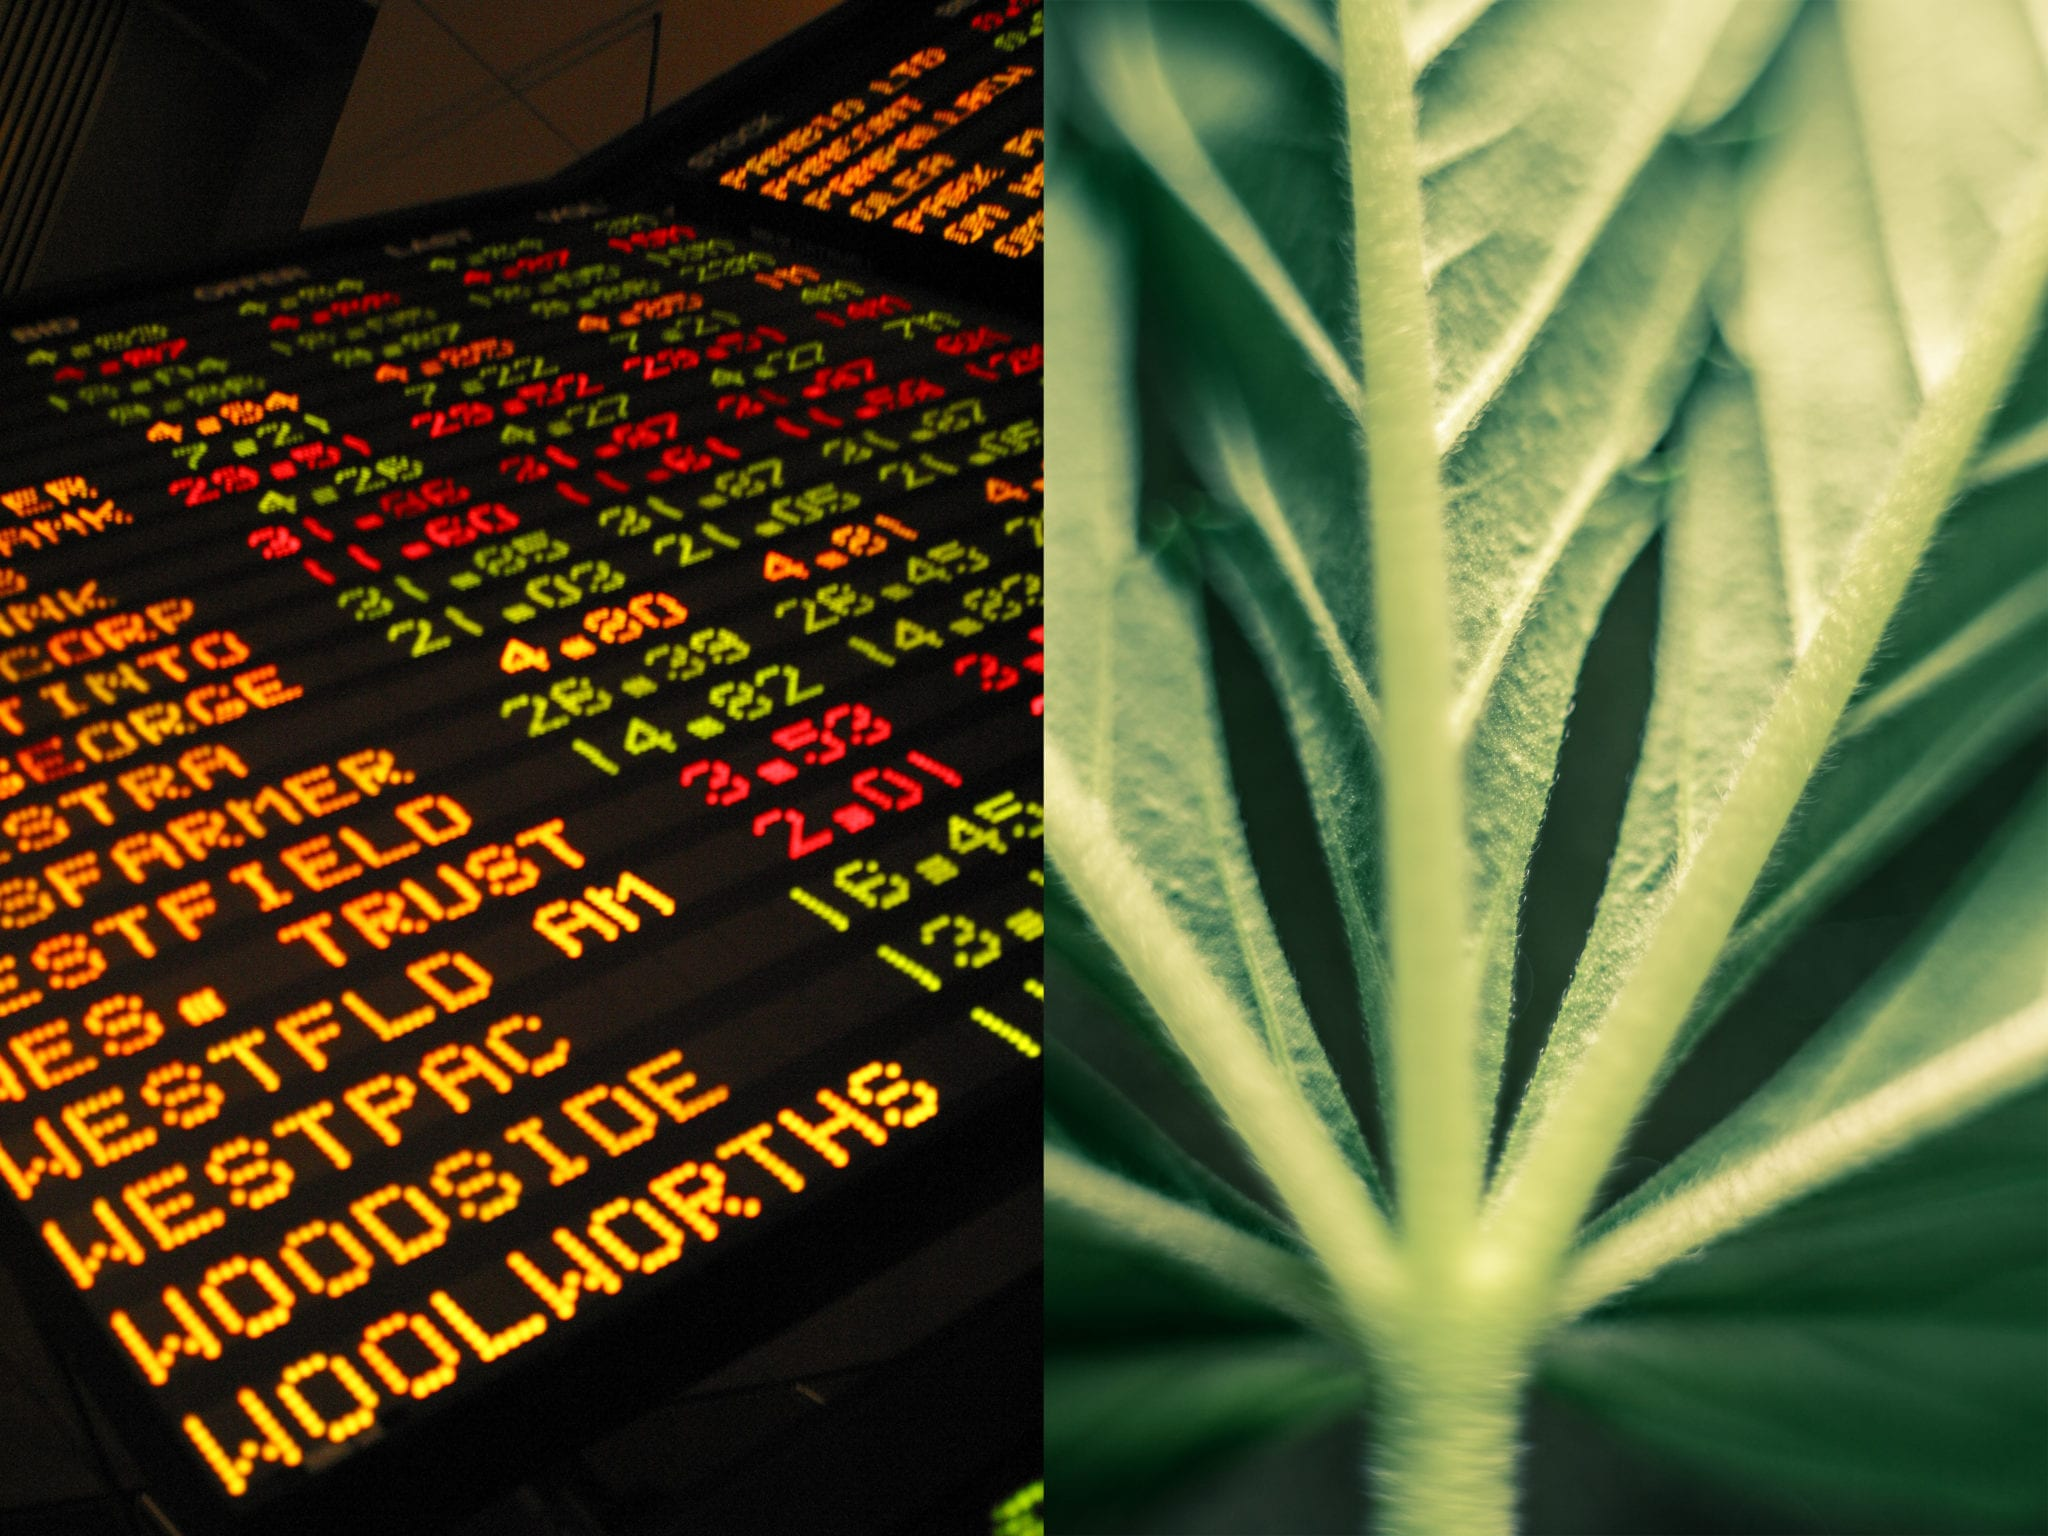 Vancouver-based cannabis company BevCanna Enterprises Inc. (CSE:BEV) started trading on the Canadian Securities Exchange (CSE) on Tuesday.